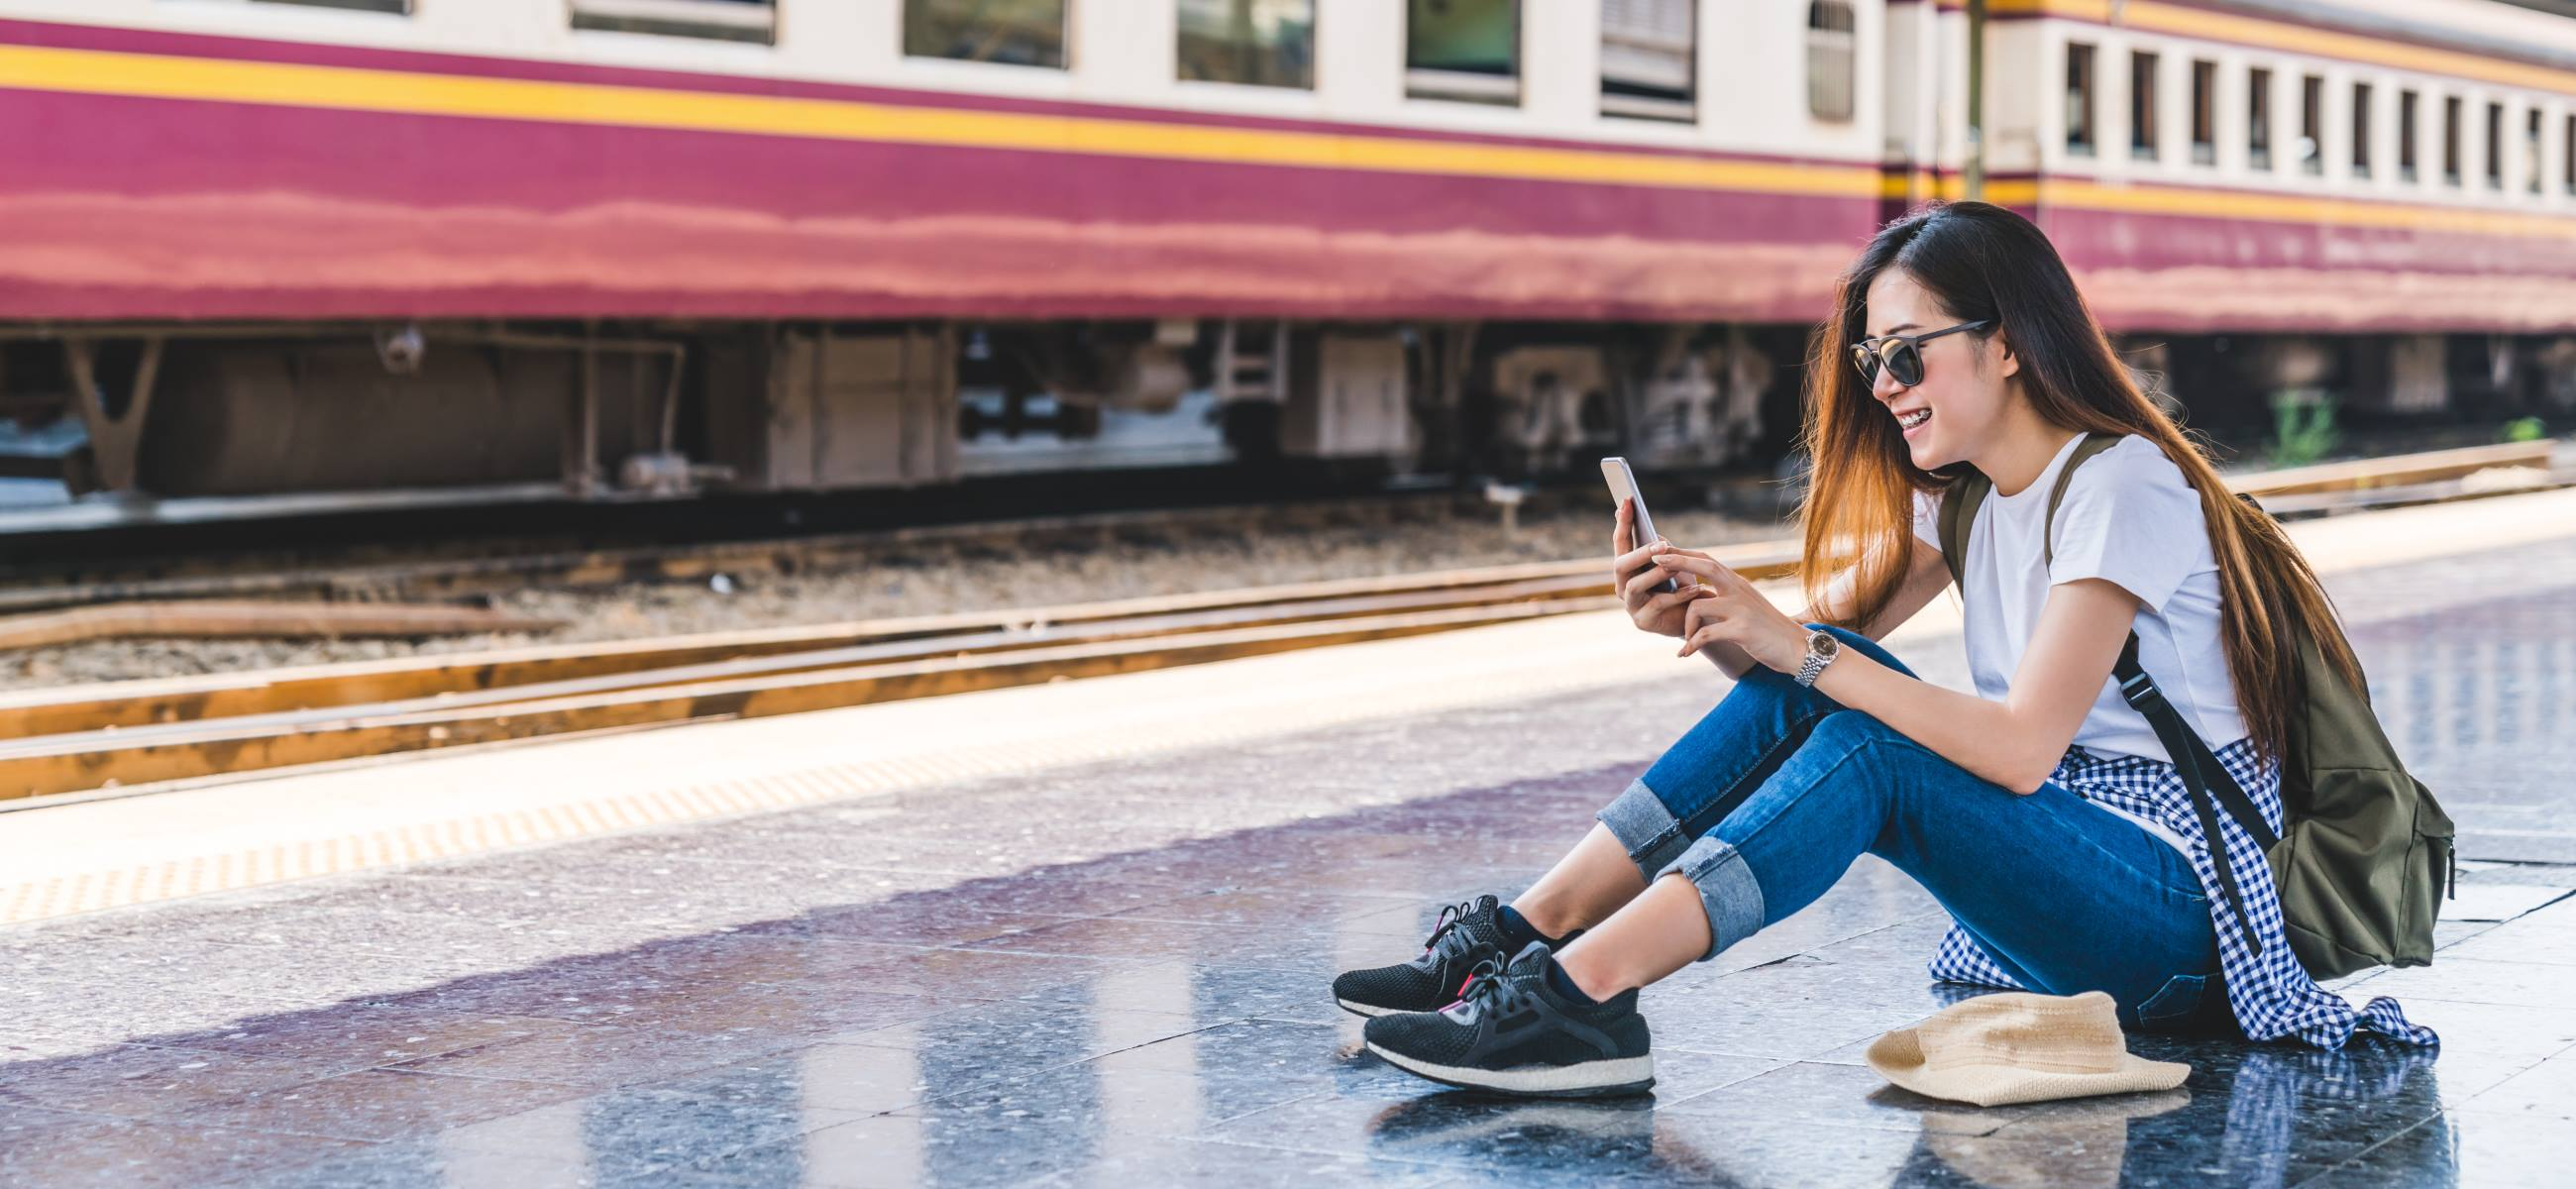 Asian-tourist-at-train-station-using-smartphone-map-social-media-check-in-or-buy-ticket-booking-Modern-travel-app-technology